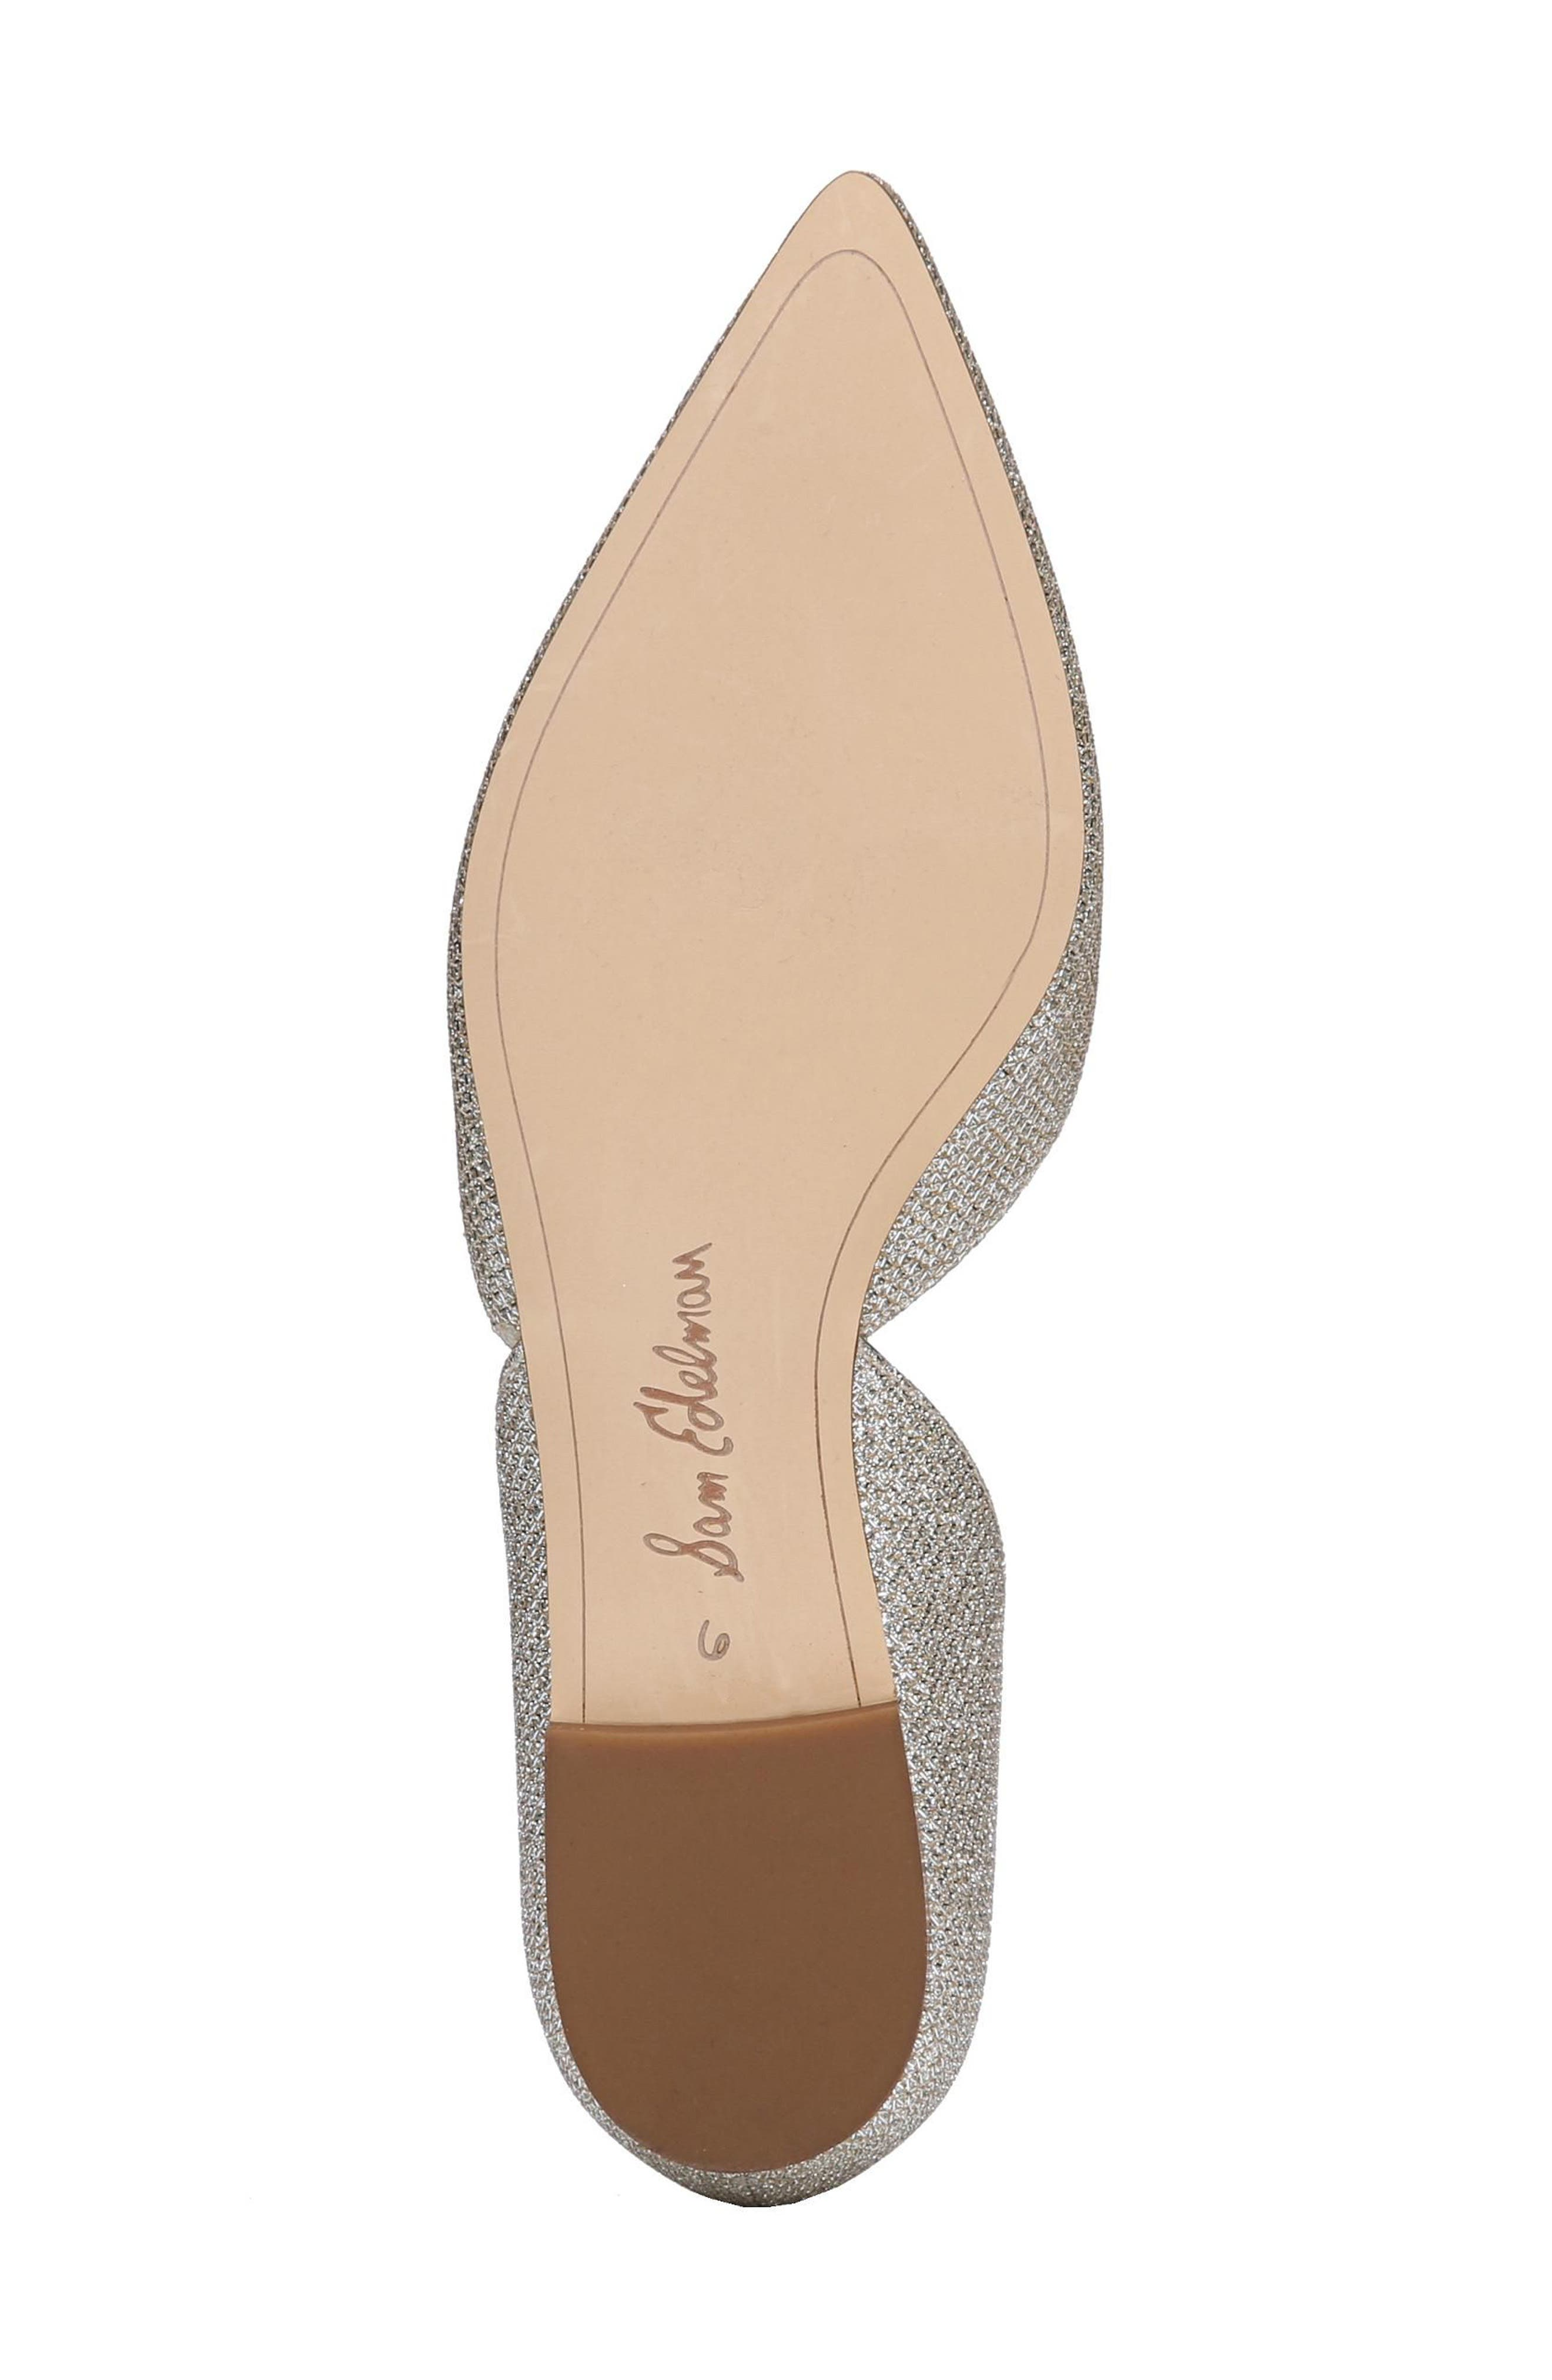 Rodney Pointy Toe d'Orsay Flat,                             Alternate thumbnail 6, color,                             JUTE GLAM FABRIC